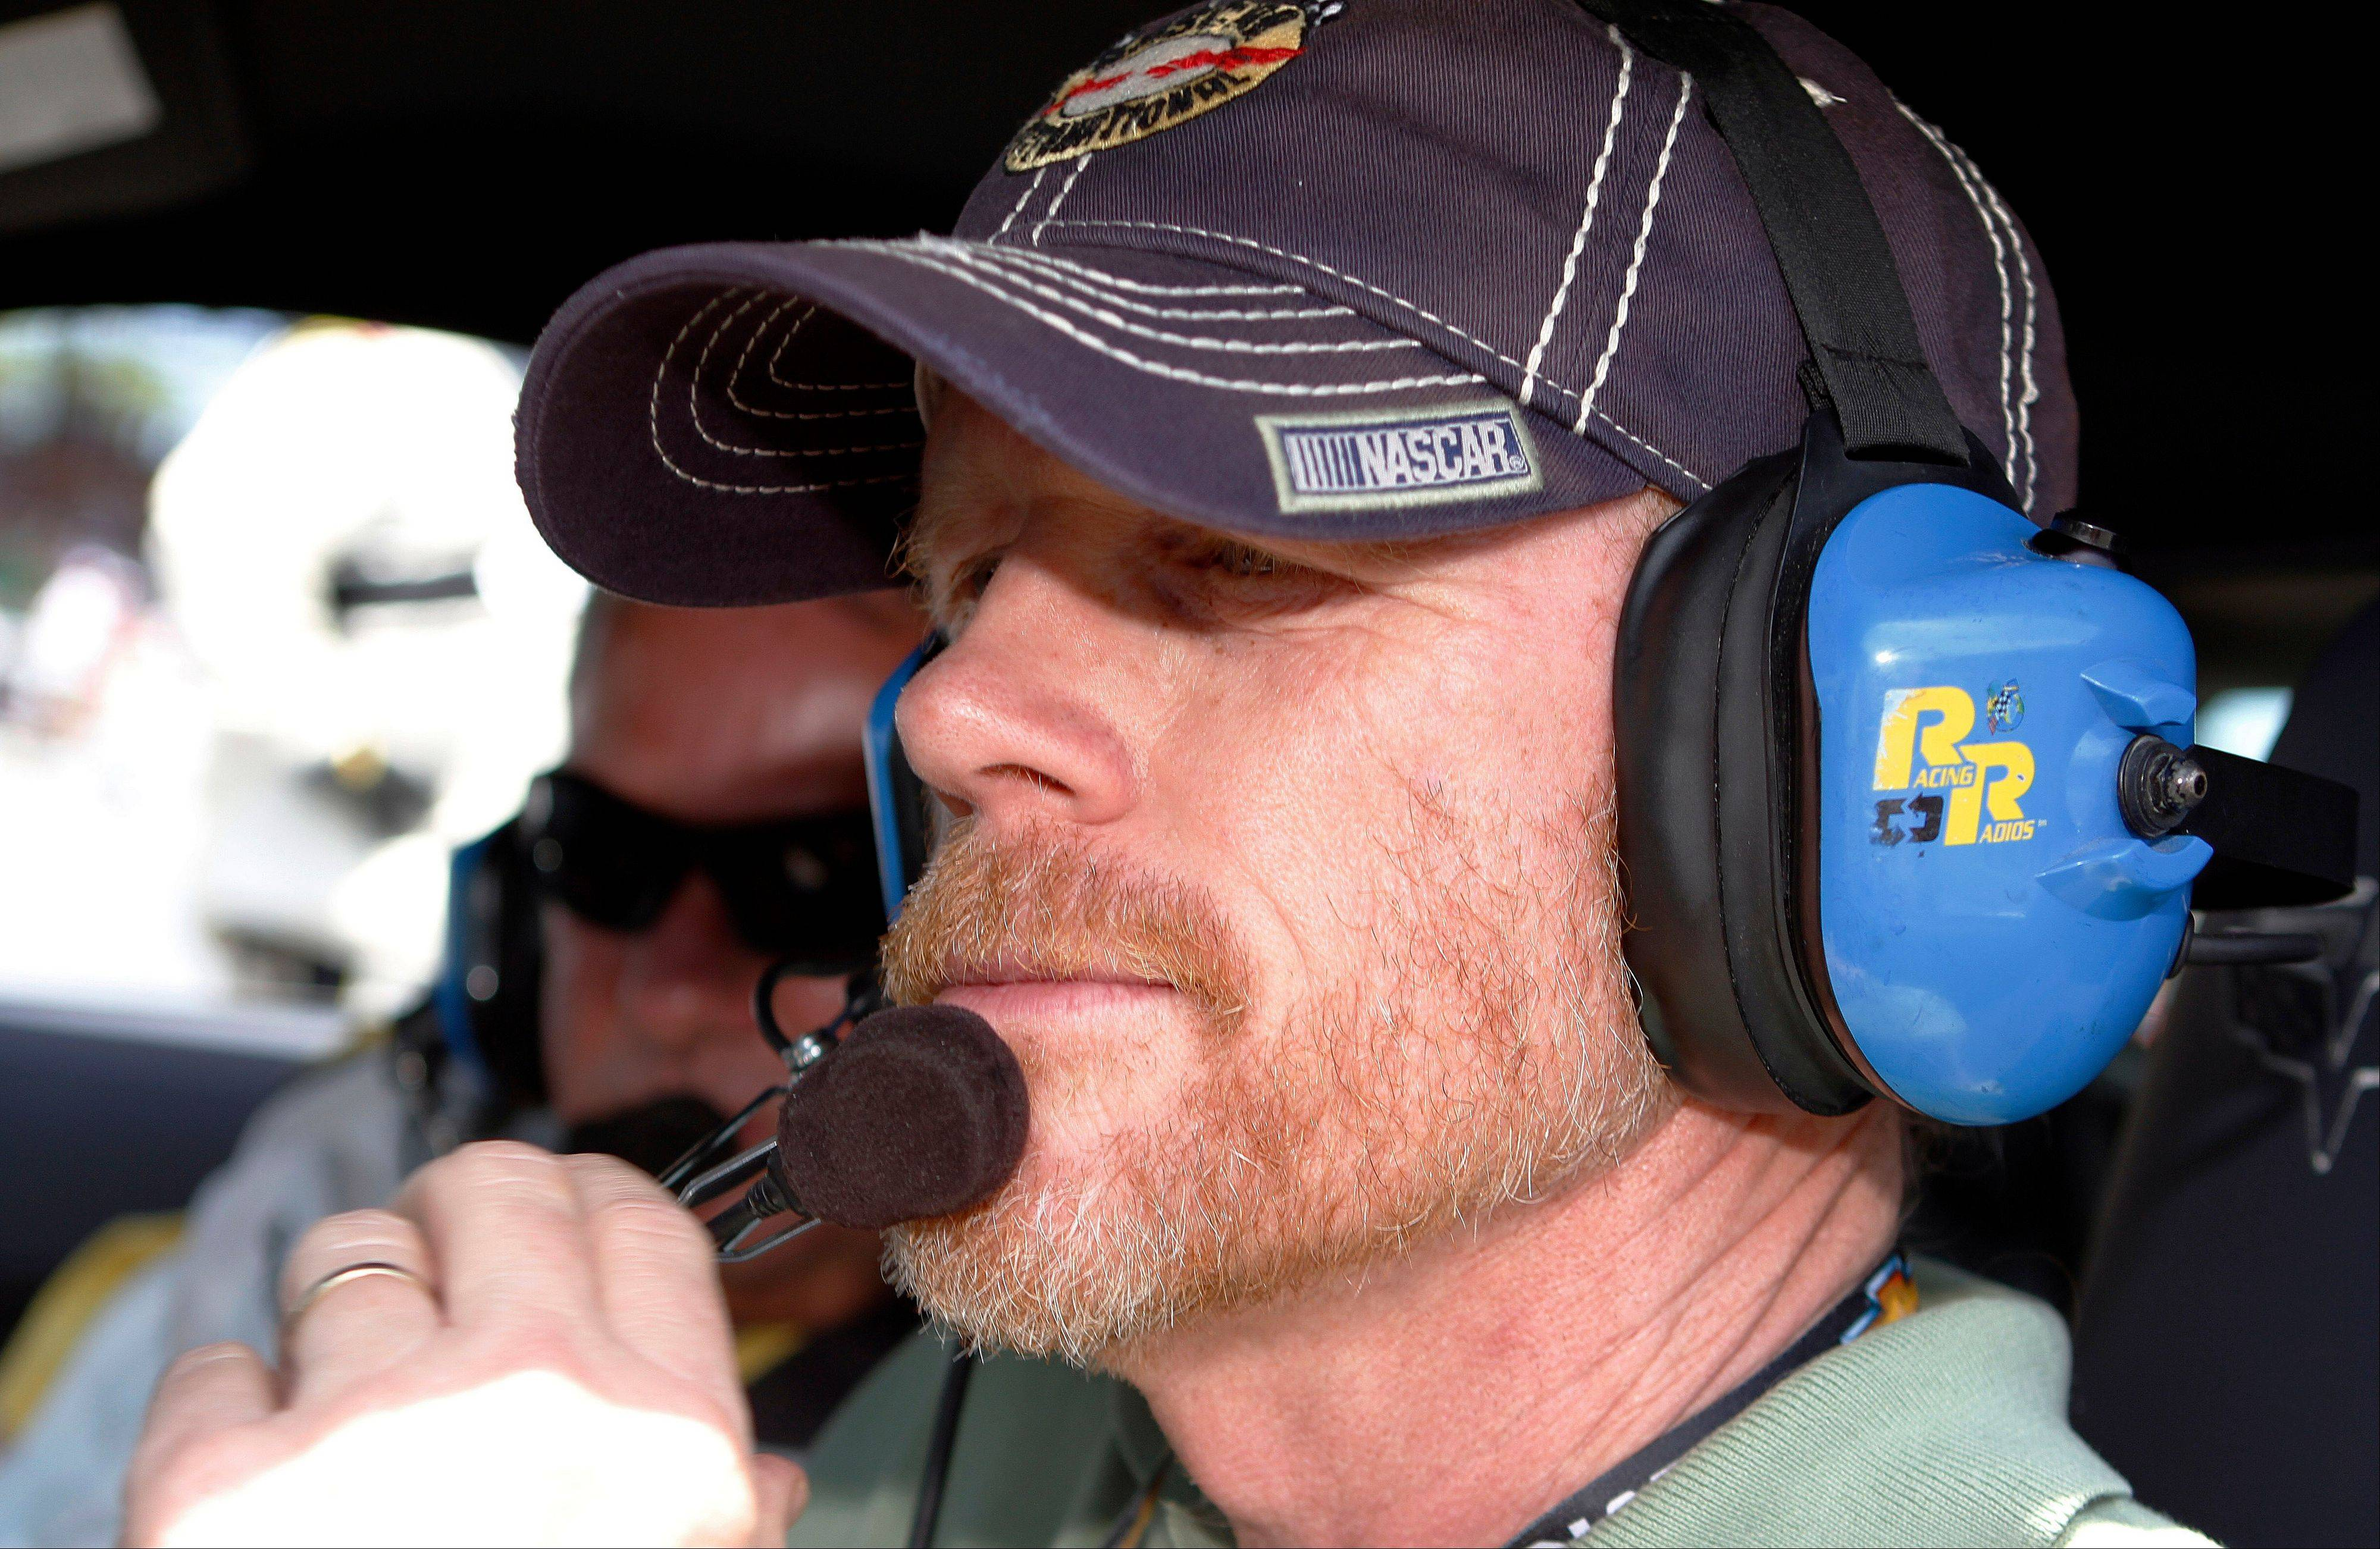 Director Ron Howard prepares to drive the pace car for the start of the NASCAR Sprint Cup Series Brickyard 400 auto race at Indianapolis Motor Speedway Sunday.